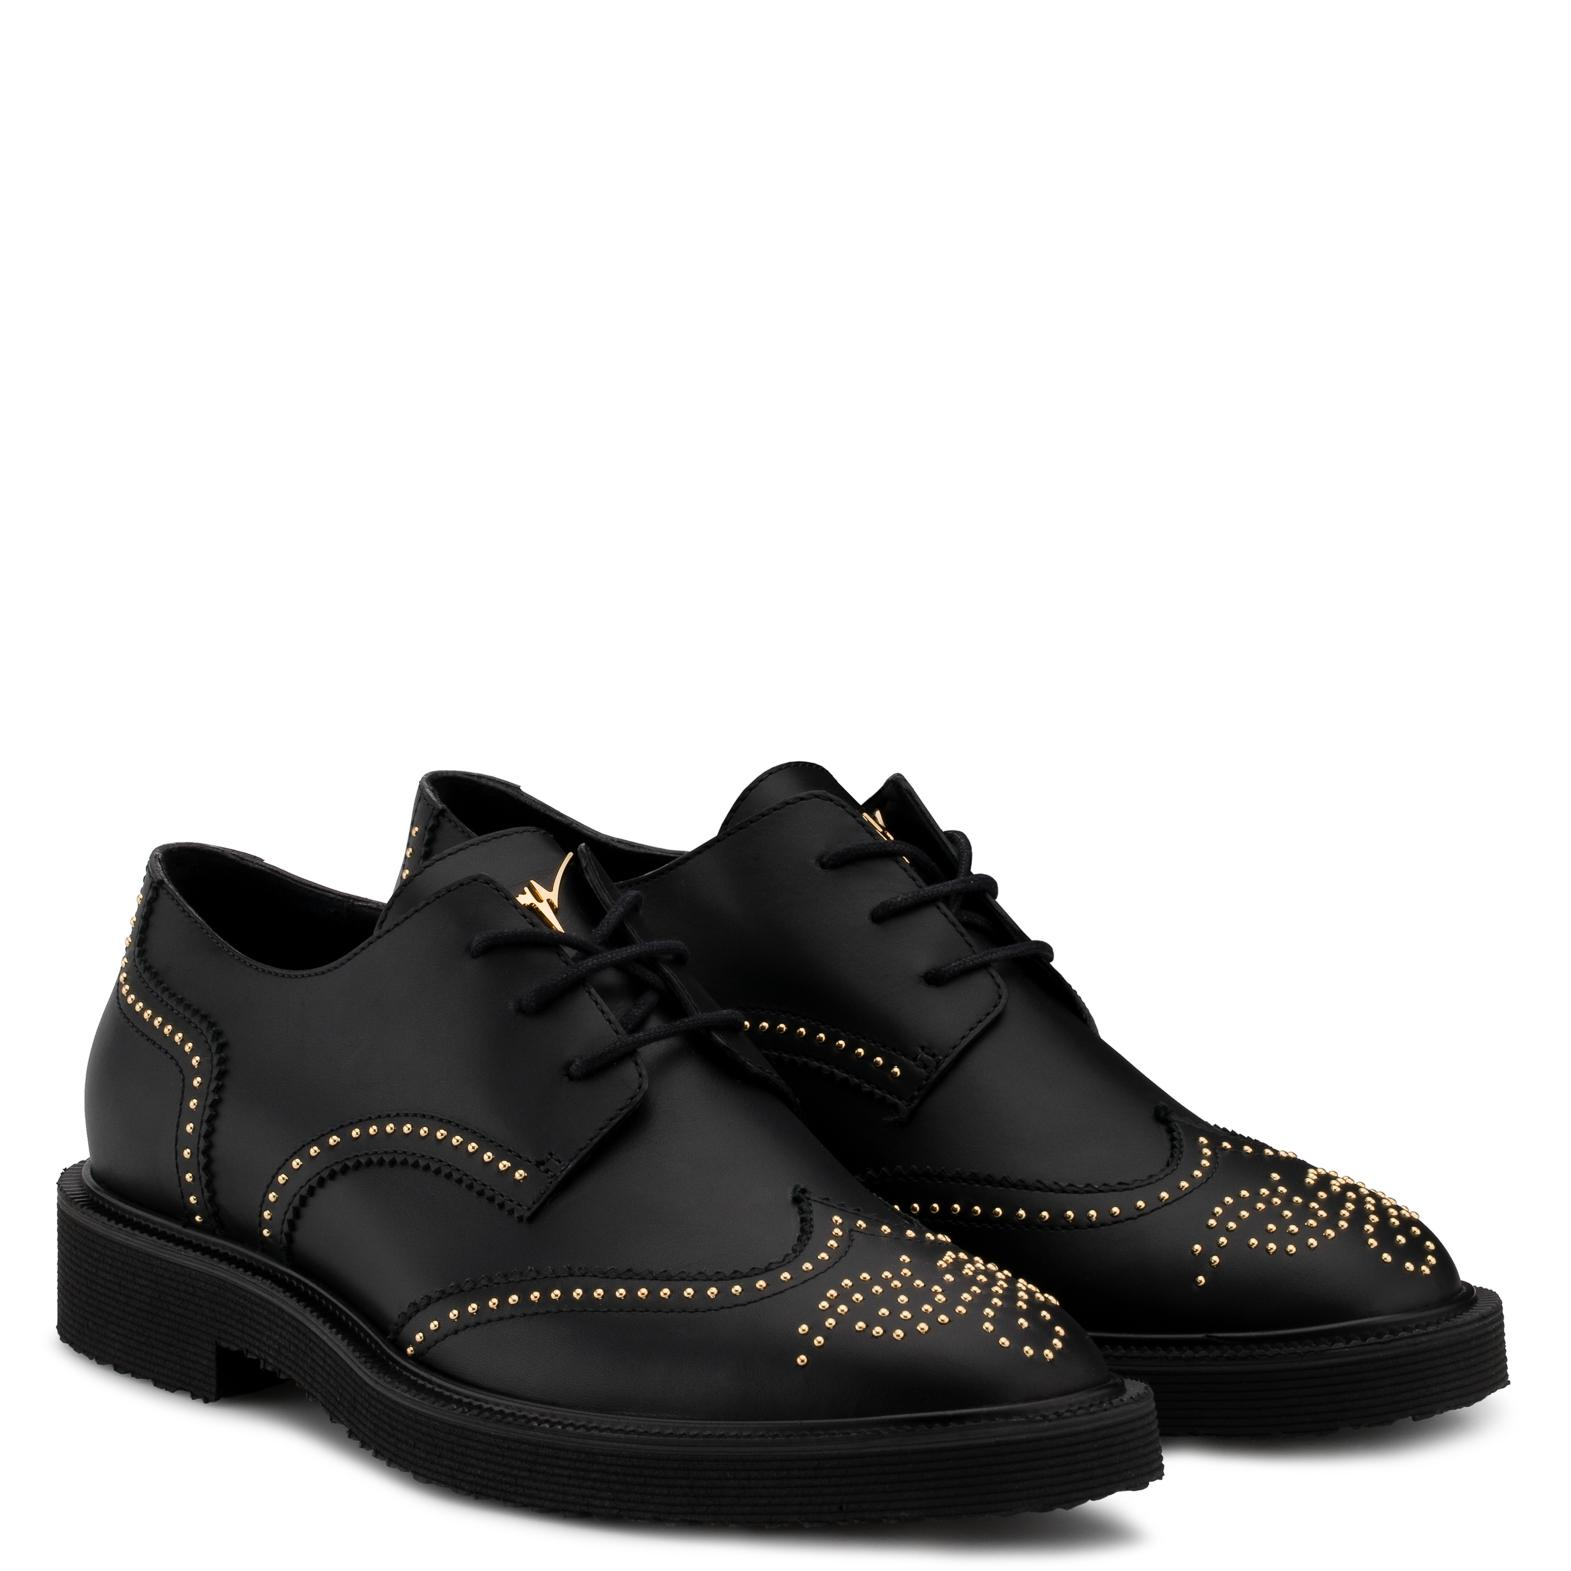 Giuseppe Zanotti Calf leather shoes with gold studs embroidery ANDIE jE4yeK